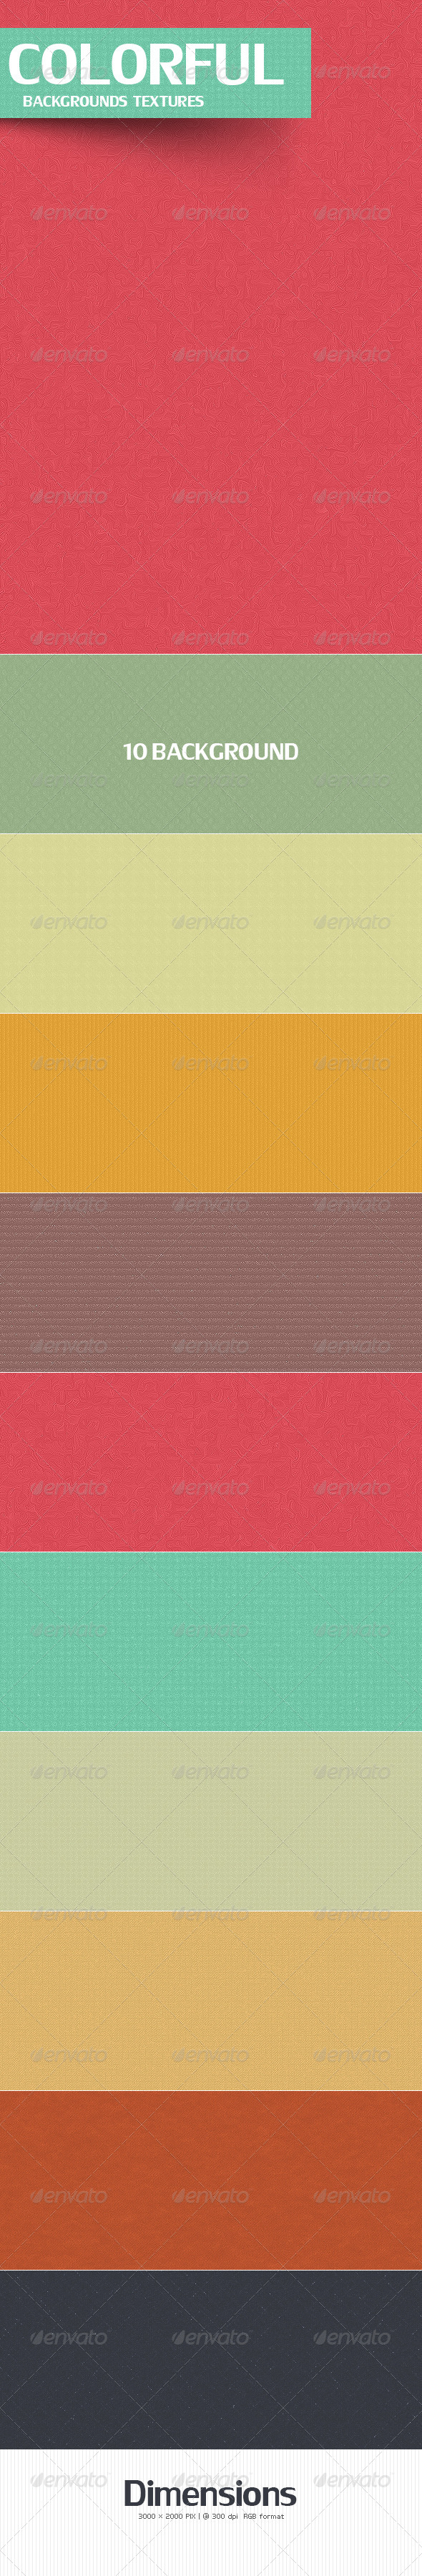 Colorful Backgrounds Textures - Patterns Backgrounds